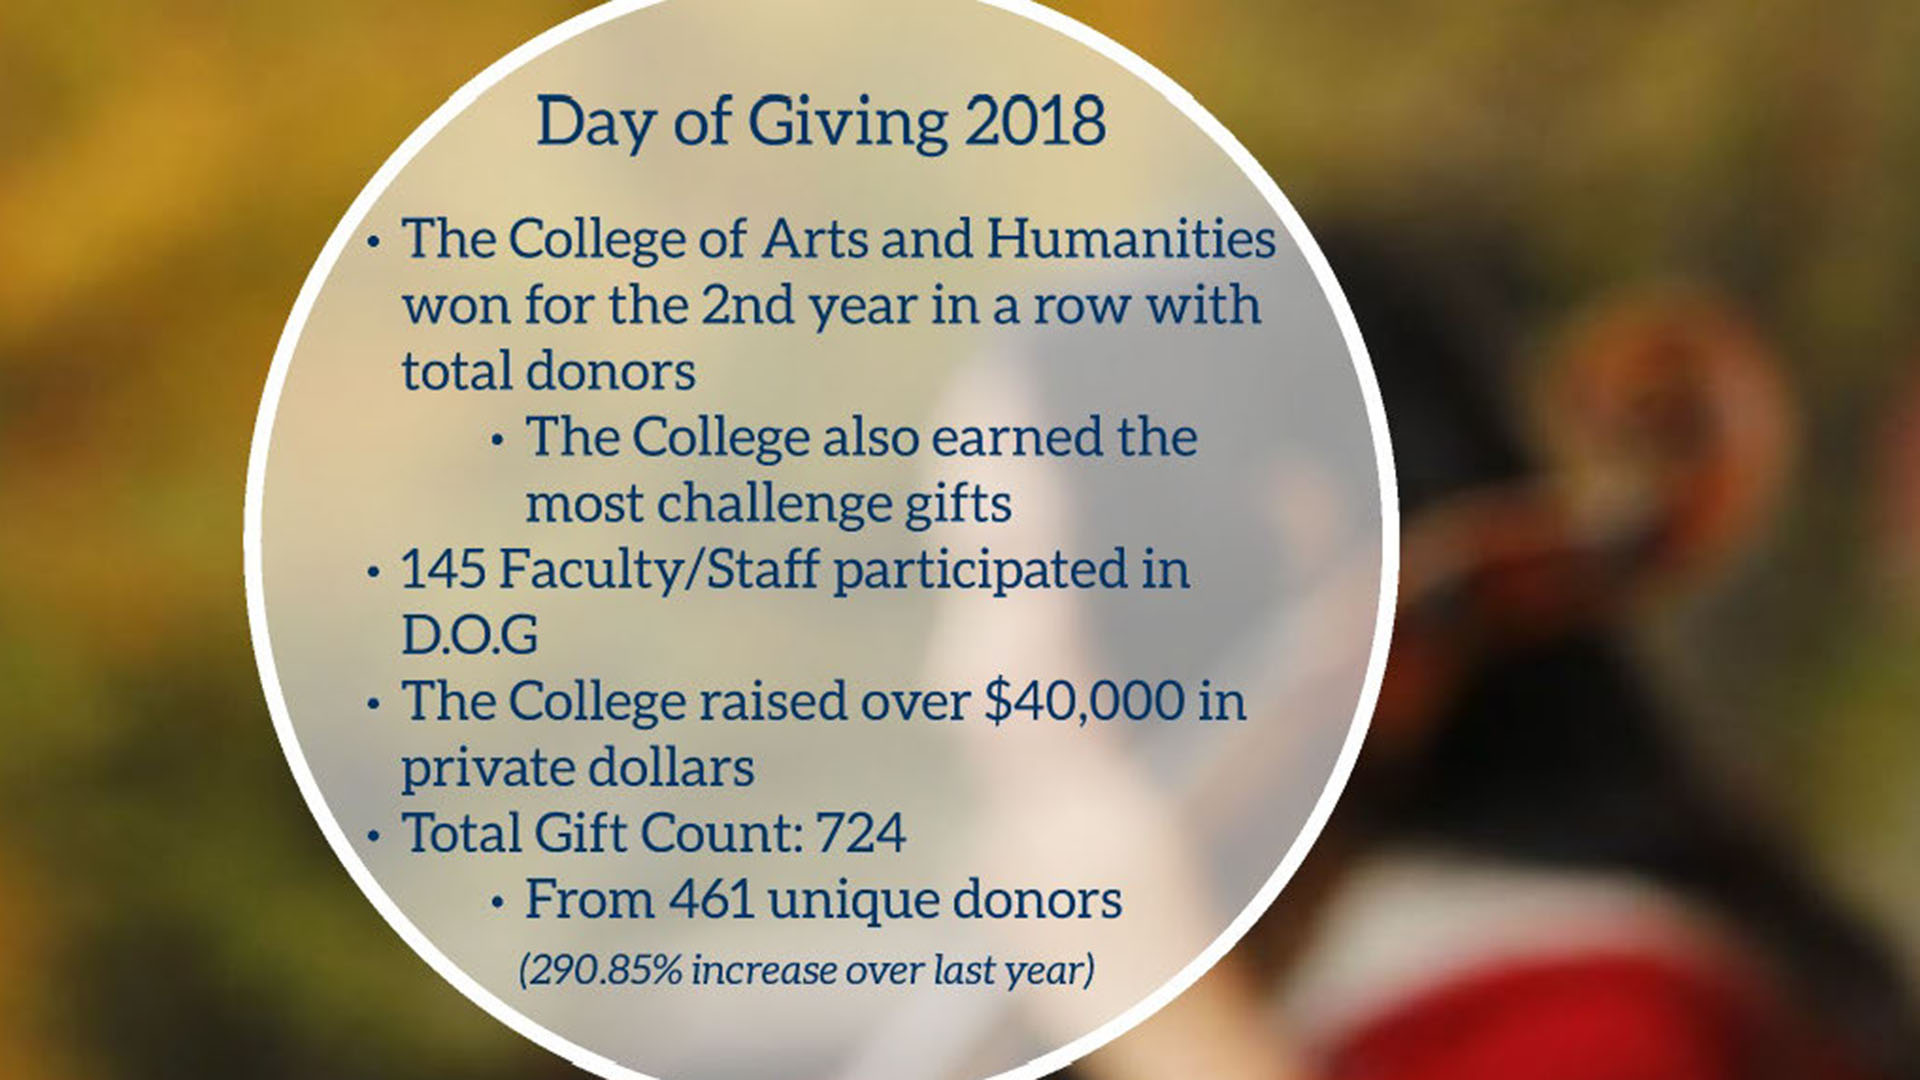 Day of Giving 2018. The College of Arts and Humanities won for the 2nd year in a row with total donors. The College also earned the most challenge gifts. 145 Faculty and Staff participated in the Day of Giving. The College raised over $40,000 in private dollars. Total Gift Count: 724, from 461 unique donors -- a 290.85% increase over last year.